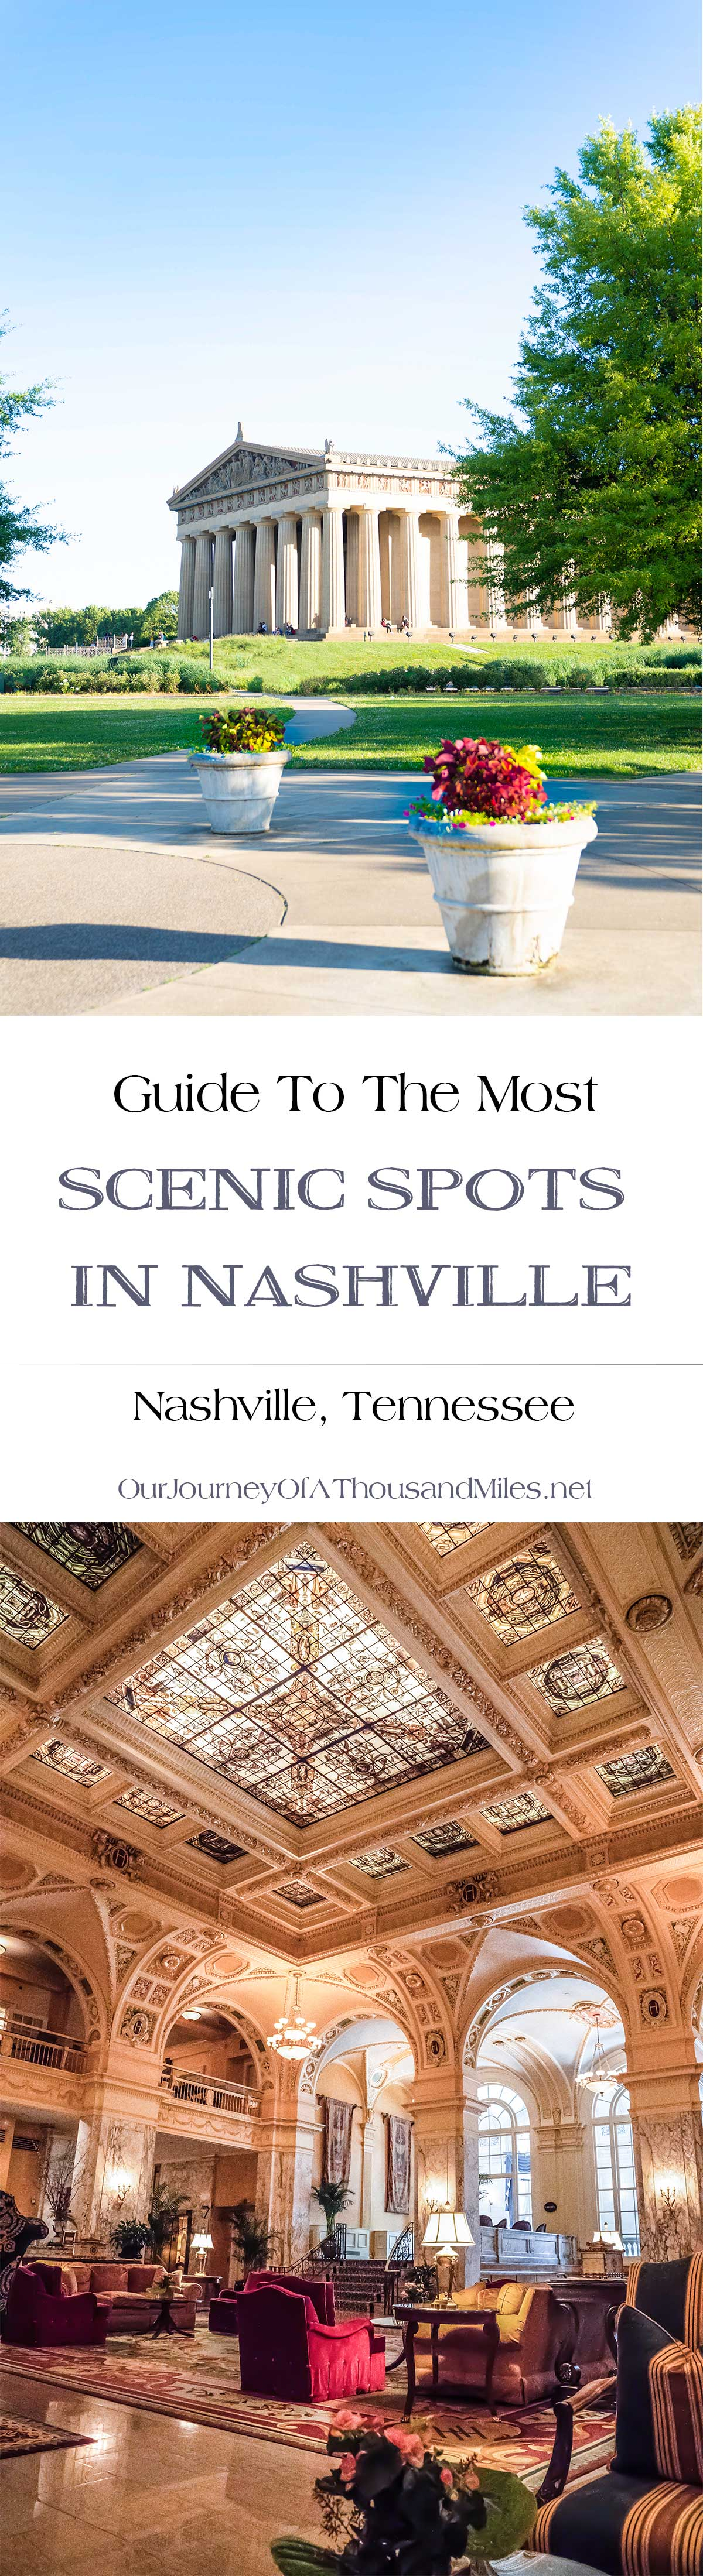 Guide-To-The-Most-Scenic-Spots-In-Nashville